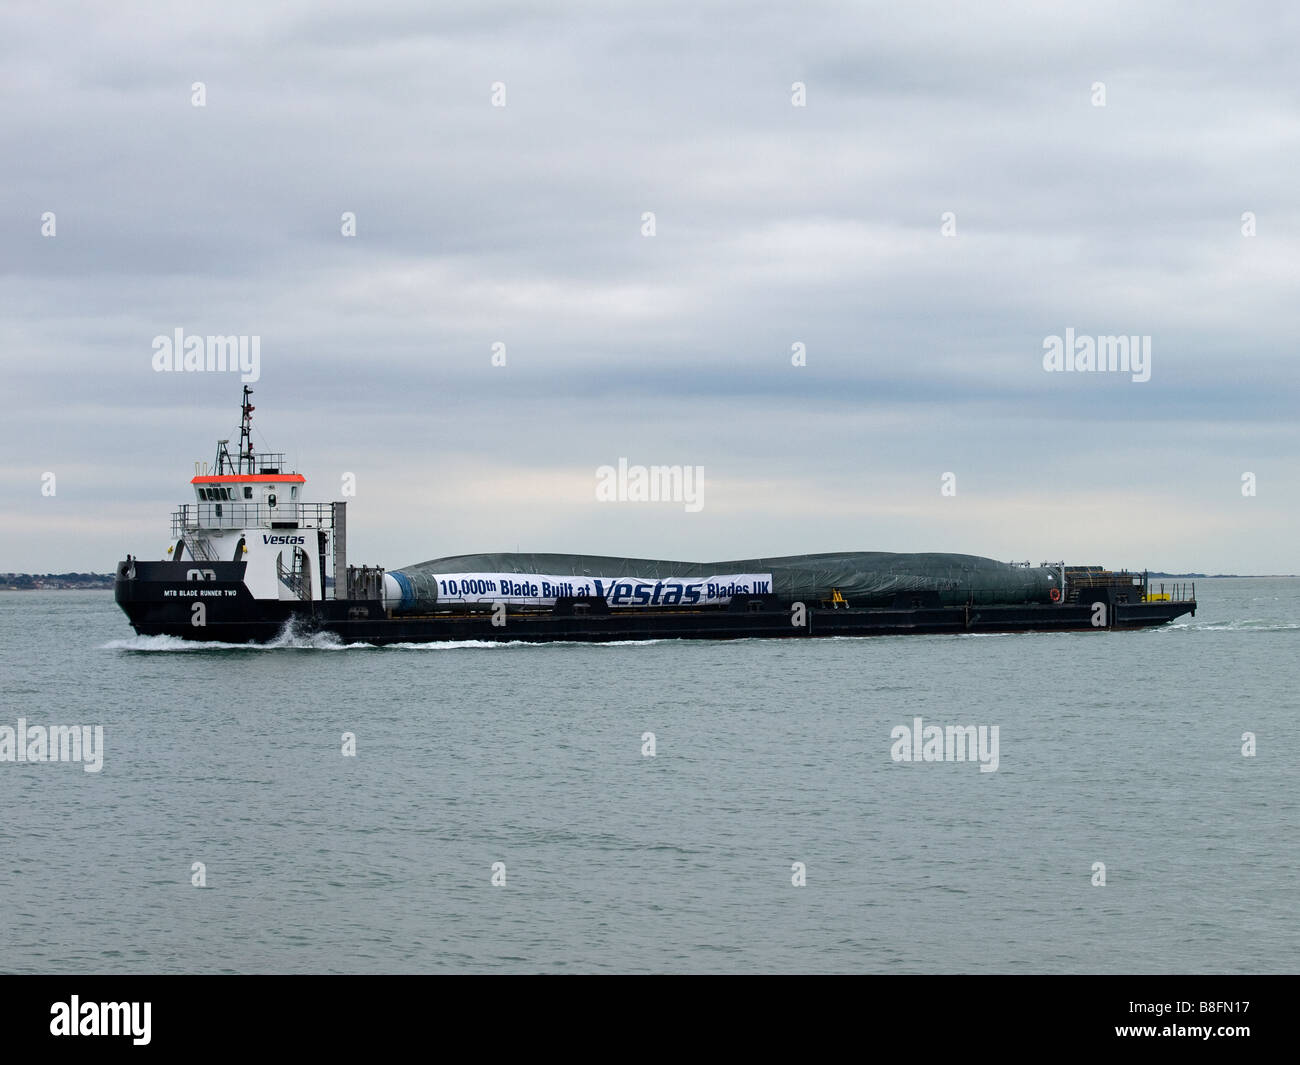 Blade Runner Two shipping the 10000th wind turbine blade manufactured at the Vestas Blades UK facility at Cowes - Stock Image